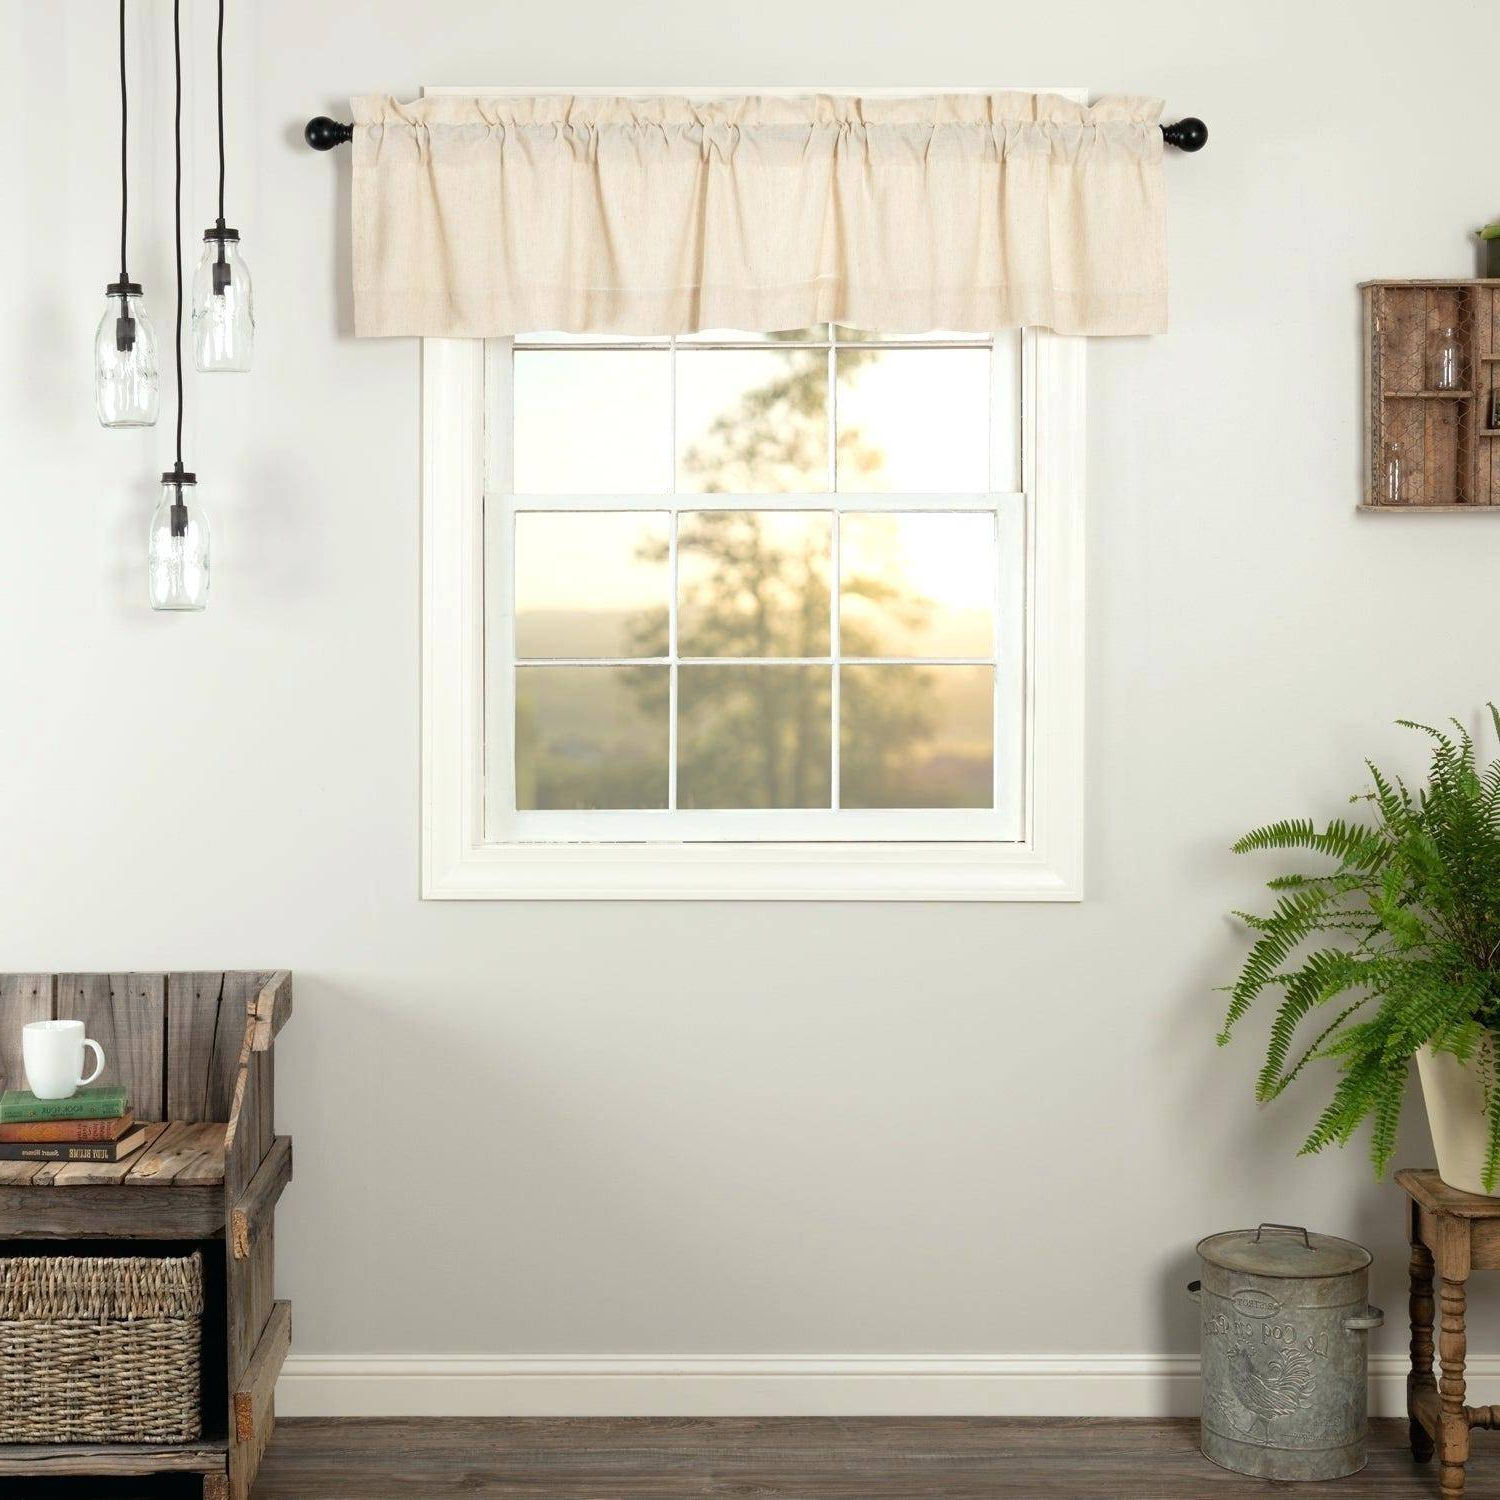 Most Recent Rustic Kitchen Curtains Within Farmhouse Valance Rustic Valances Modern Window For Kitchen (Gallery 19 of 20)